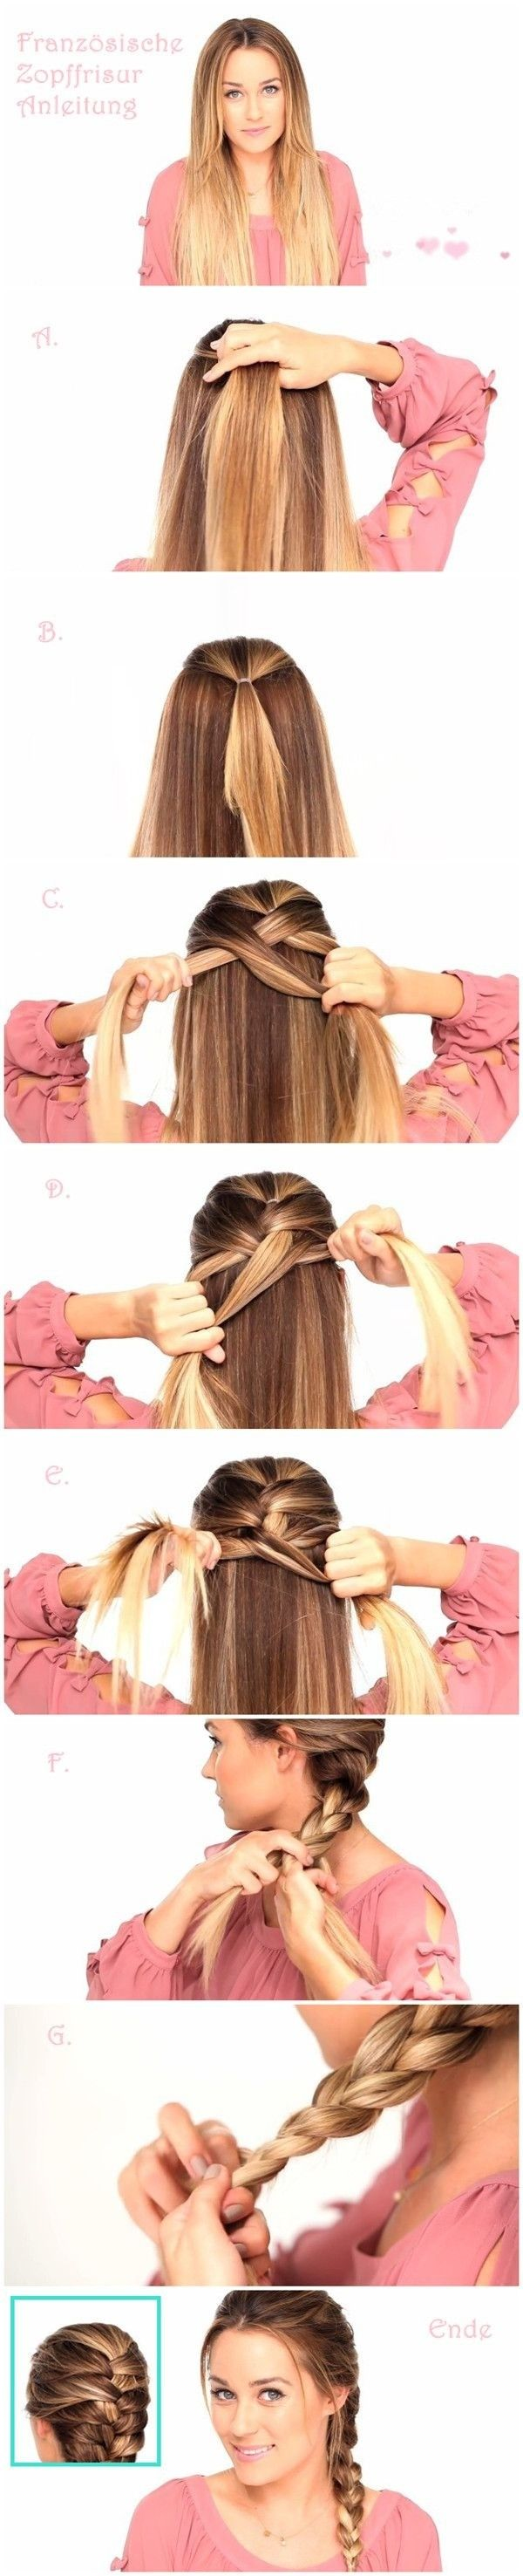 Easy Braided Hairstyles Tutorials: Trendy Hairstyle for Straight Long Hair   For...